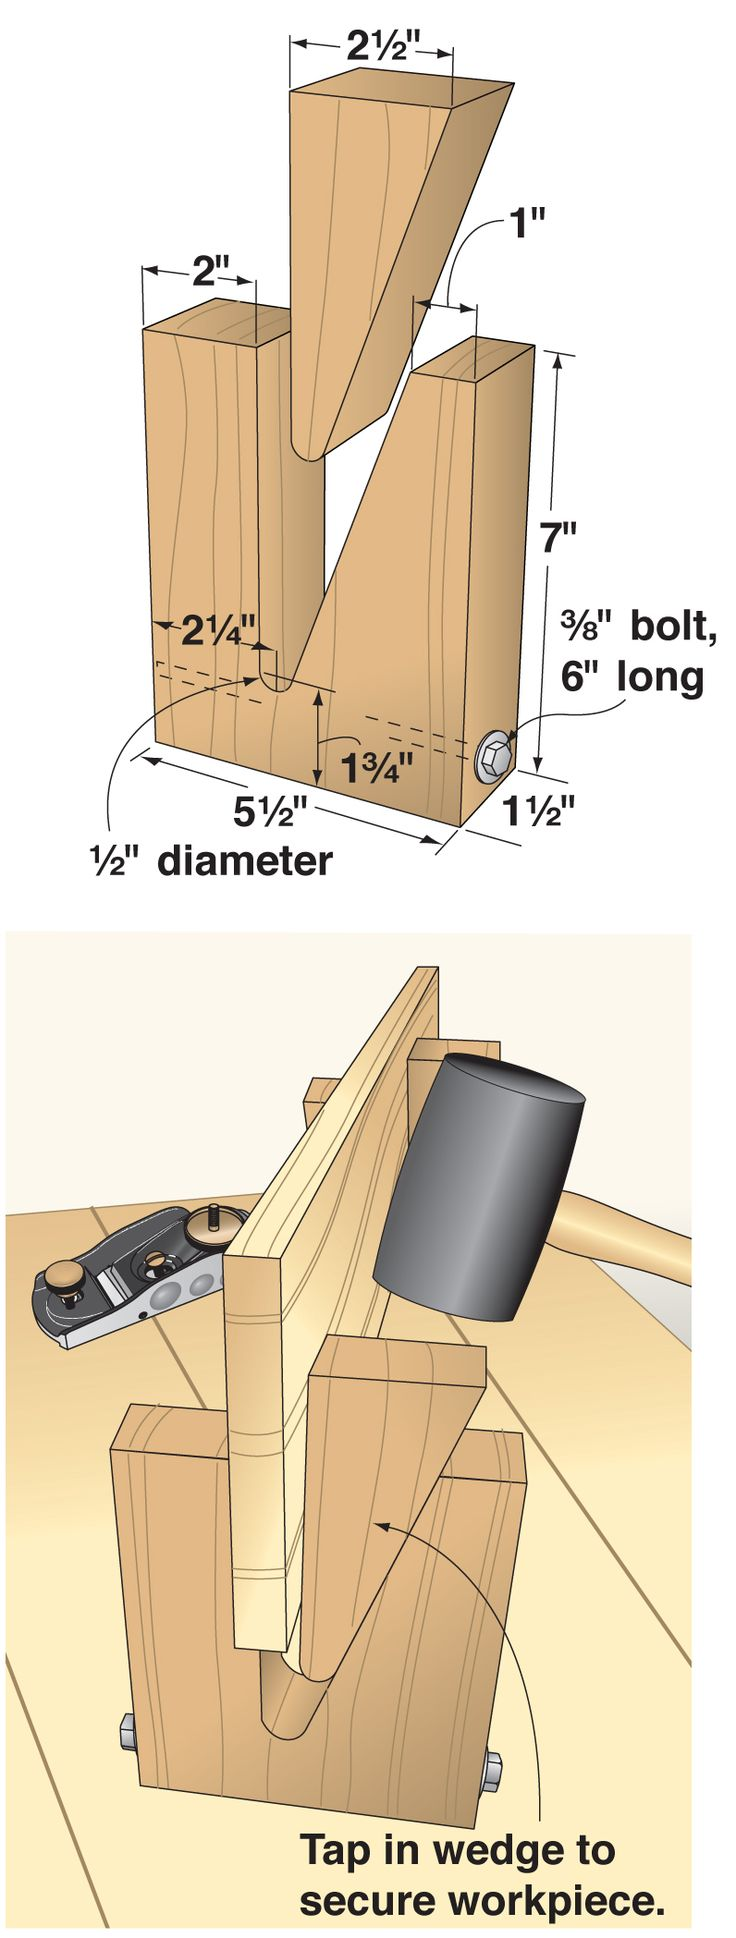 Should you plan to learn about woodworking methods, look at http://www.woodesigner.net